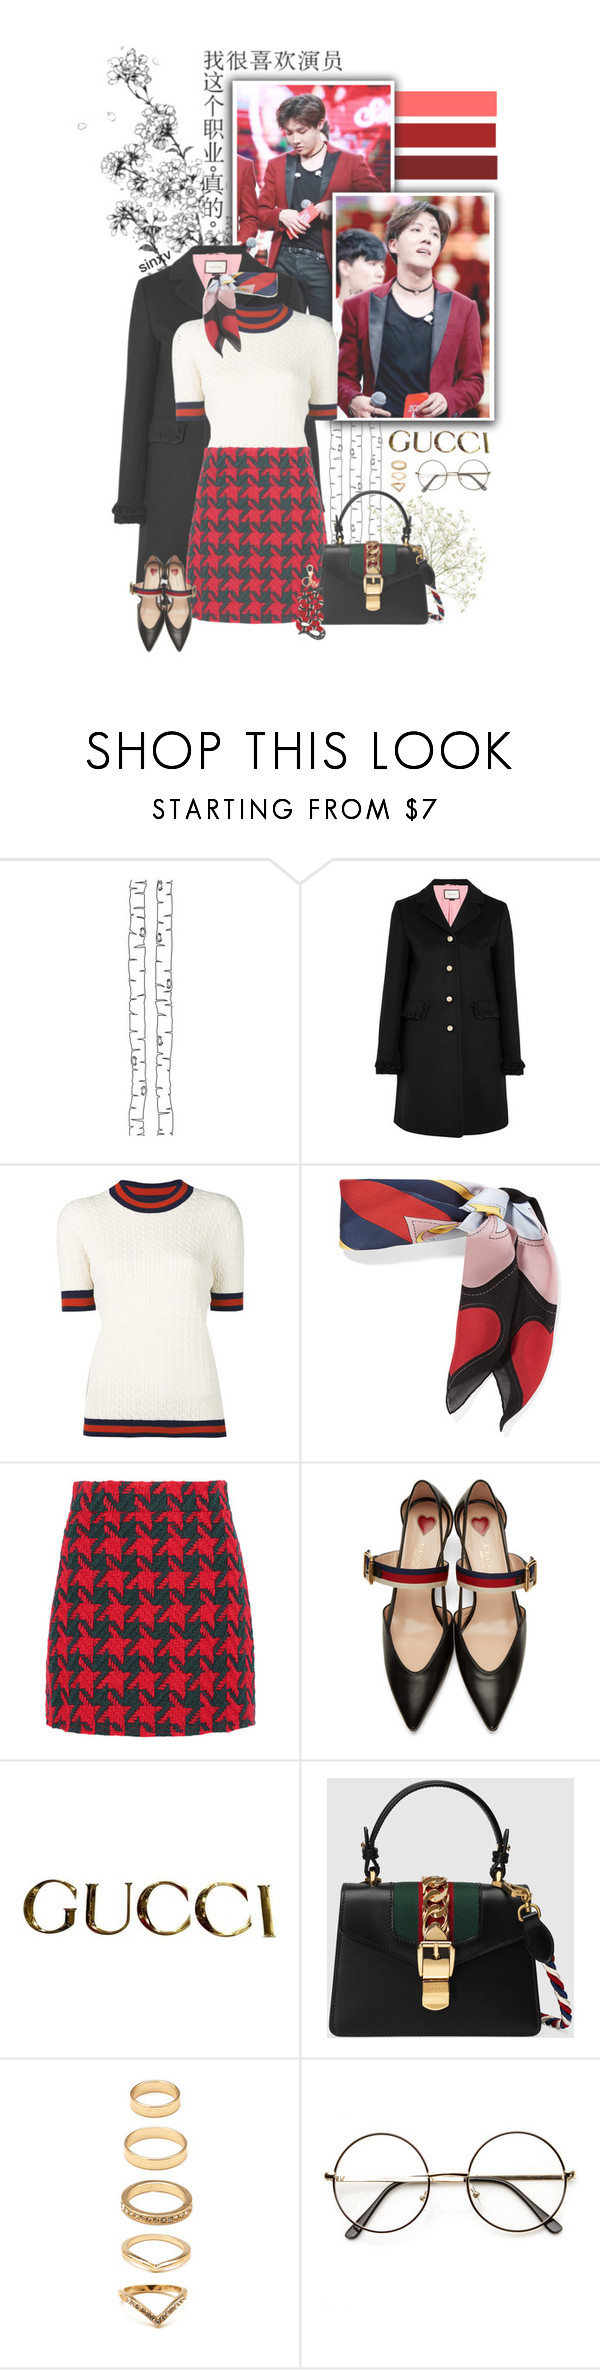 """""""Gucci this, Gucci that // 10:53 // 20170409"""" by sinxv ❤ liked on Polyvore featuring ferm LIVING, Gucci, Forever 21 and ZeroUV"""